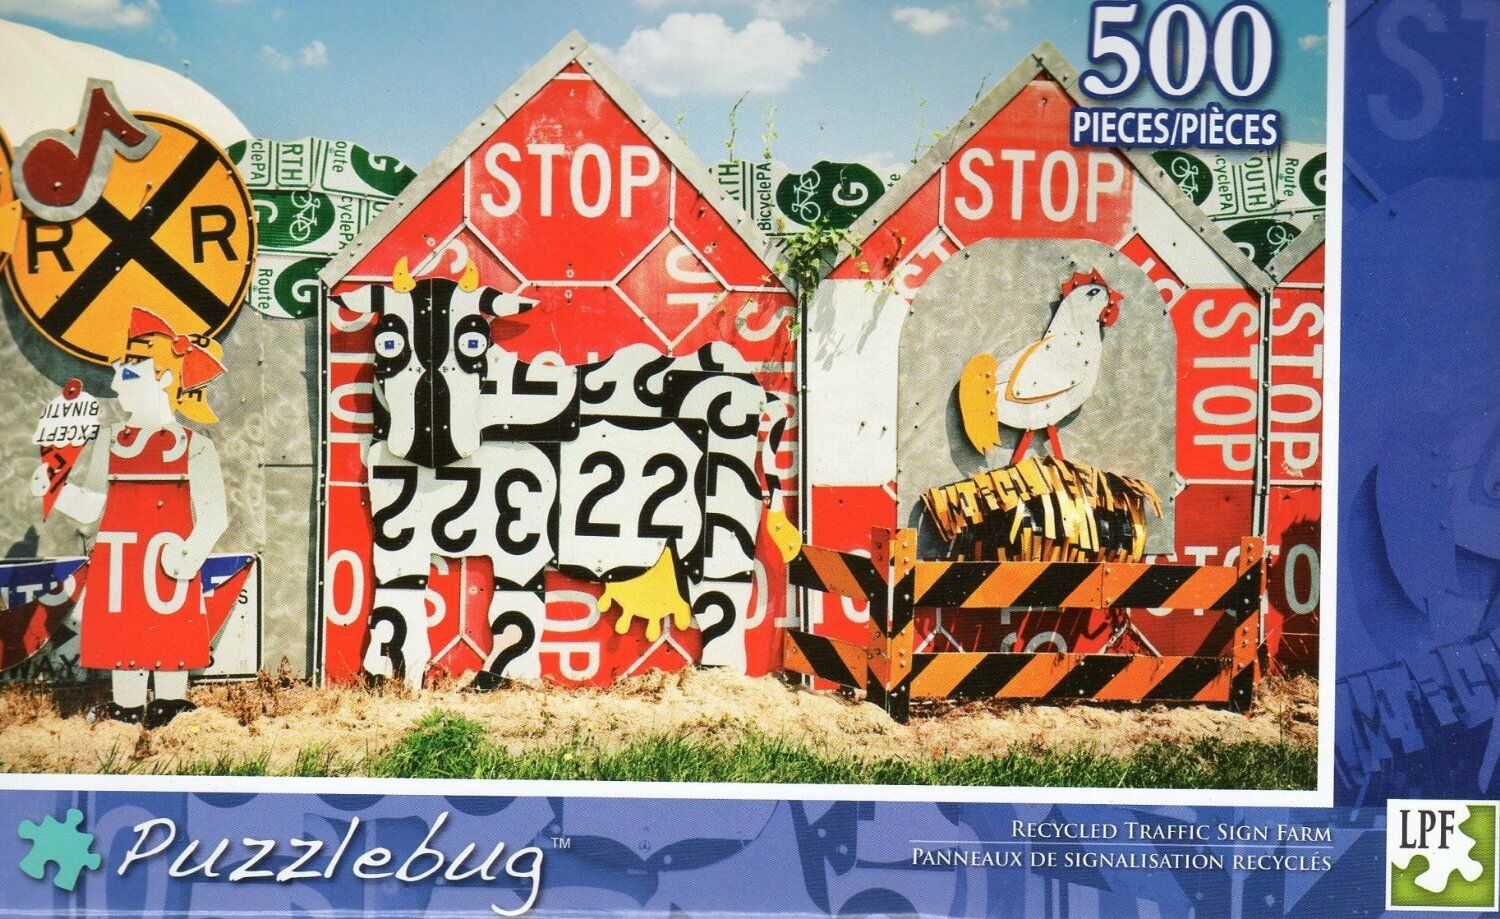 NEW Puzzlebug 500  Piece Jigsaw Puzzle  500 Recycled Traffic Sign Farm e94d4b